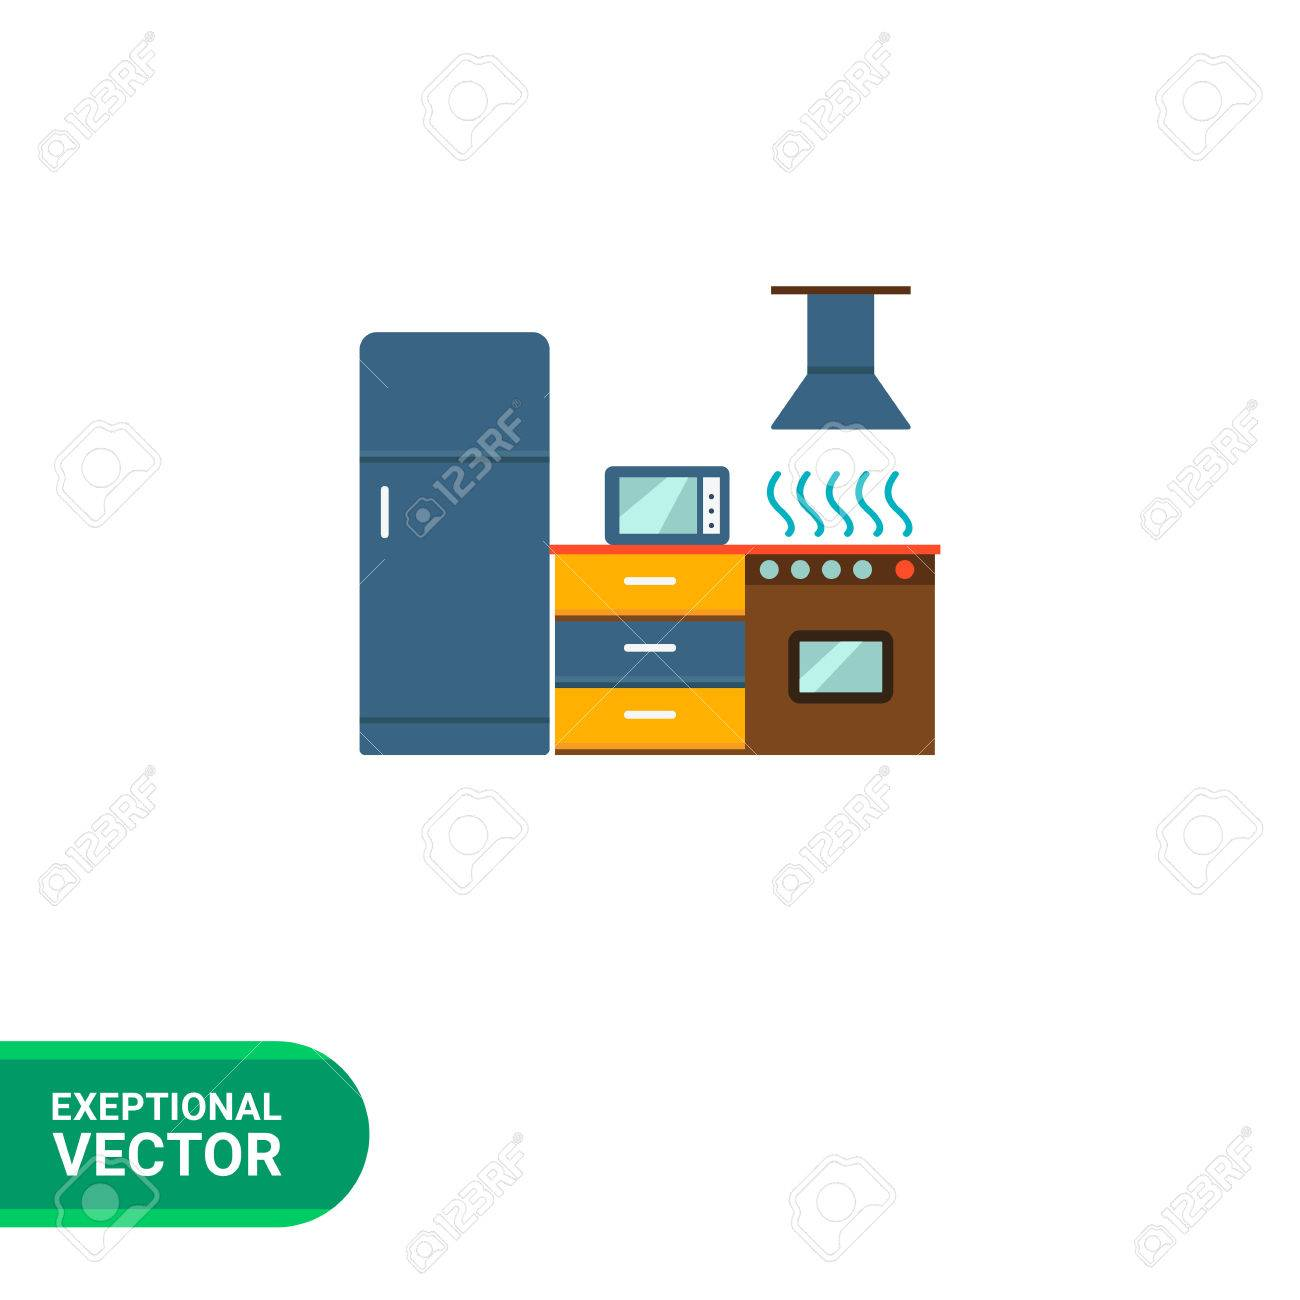 Herd Schrank Stock Photo